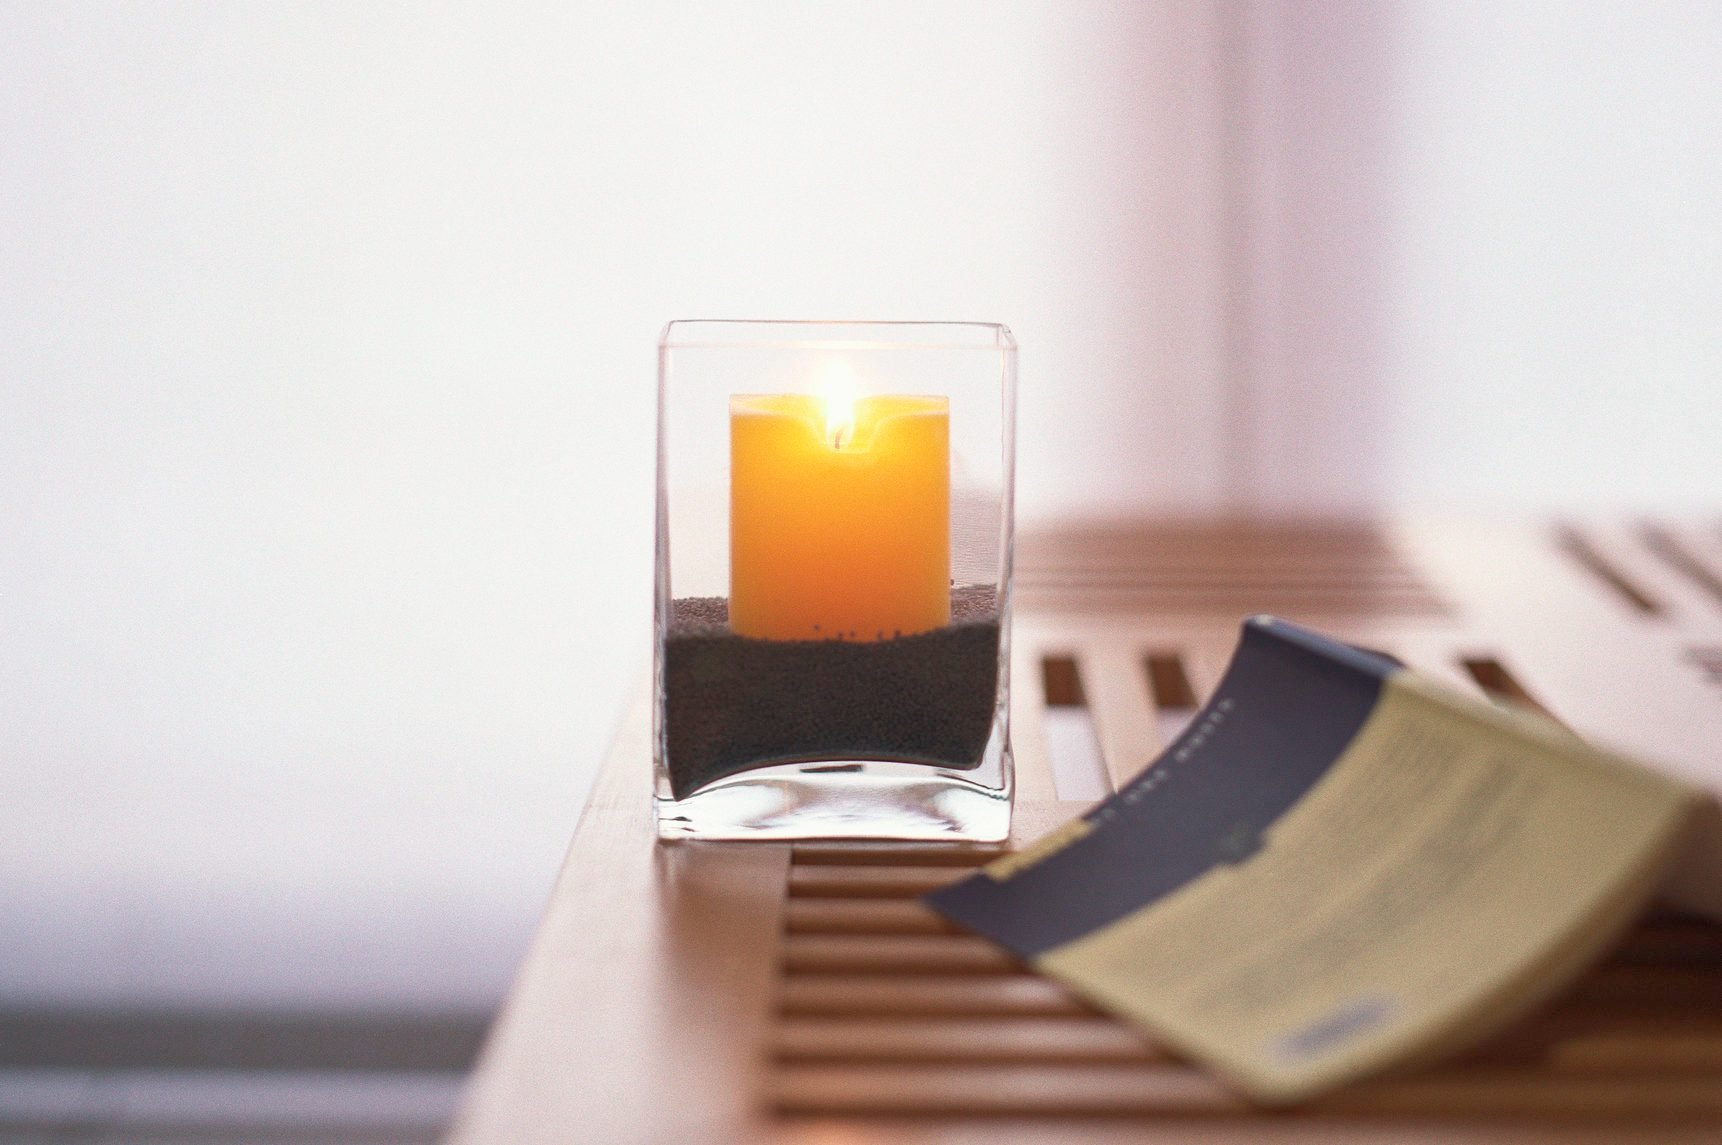 Candle and open book on table inside.